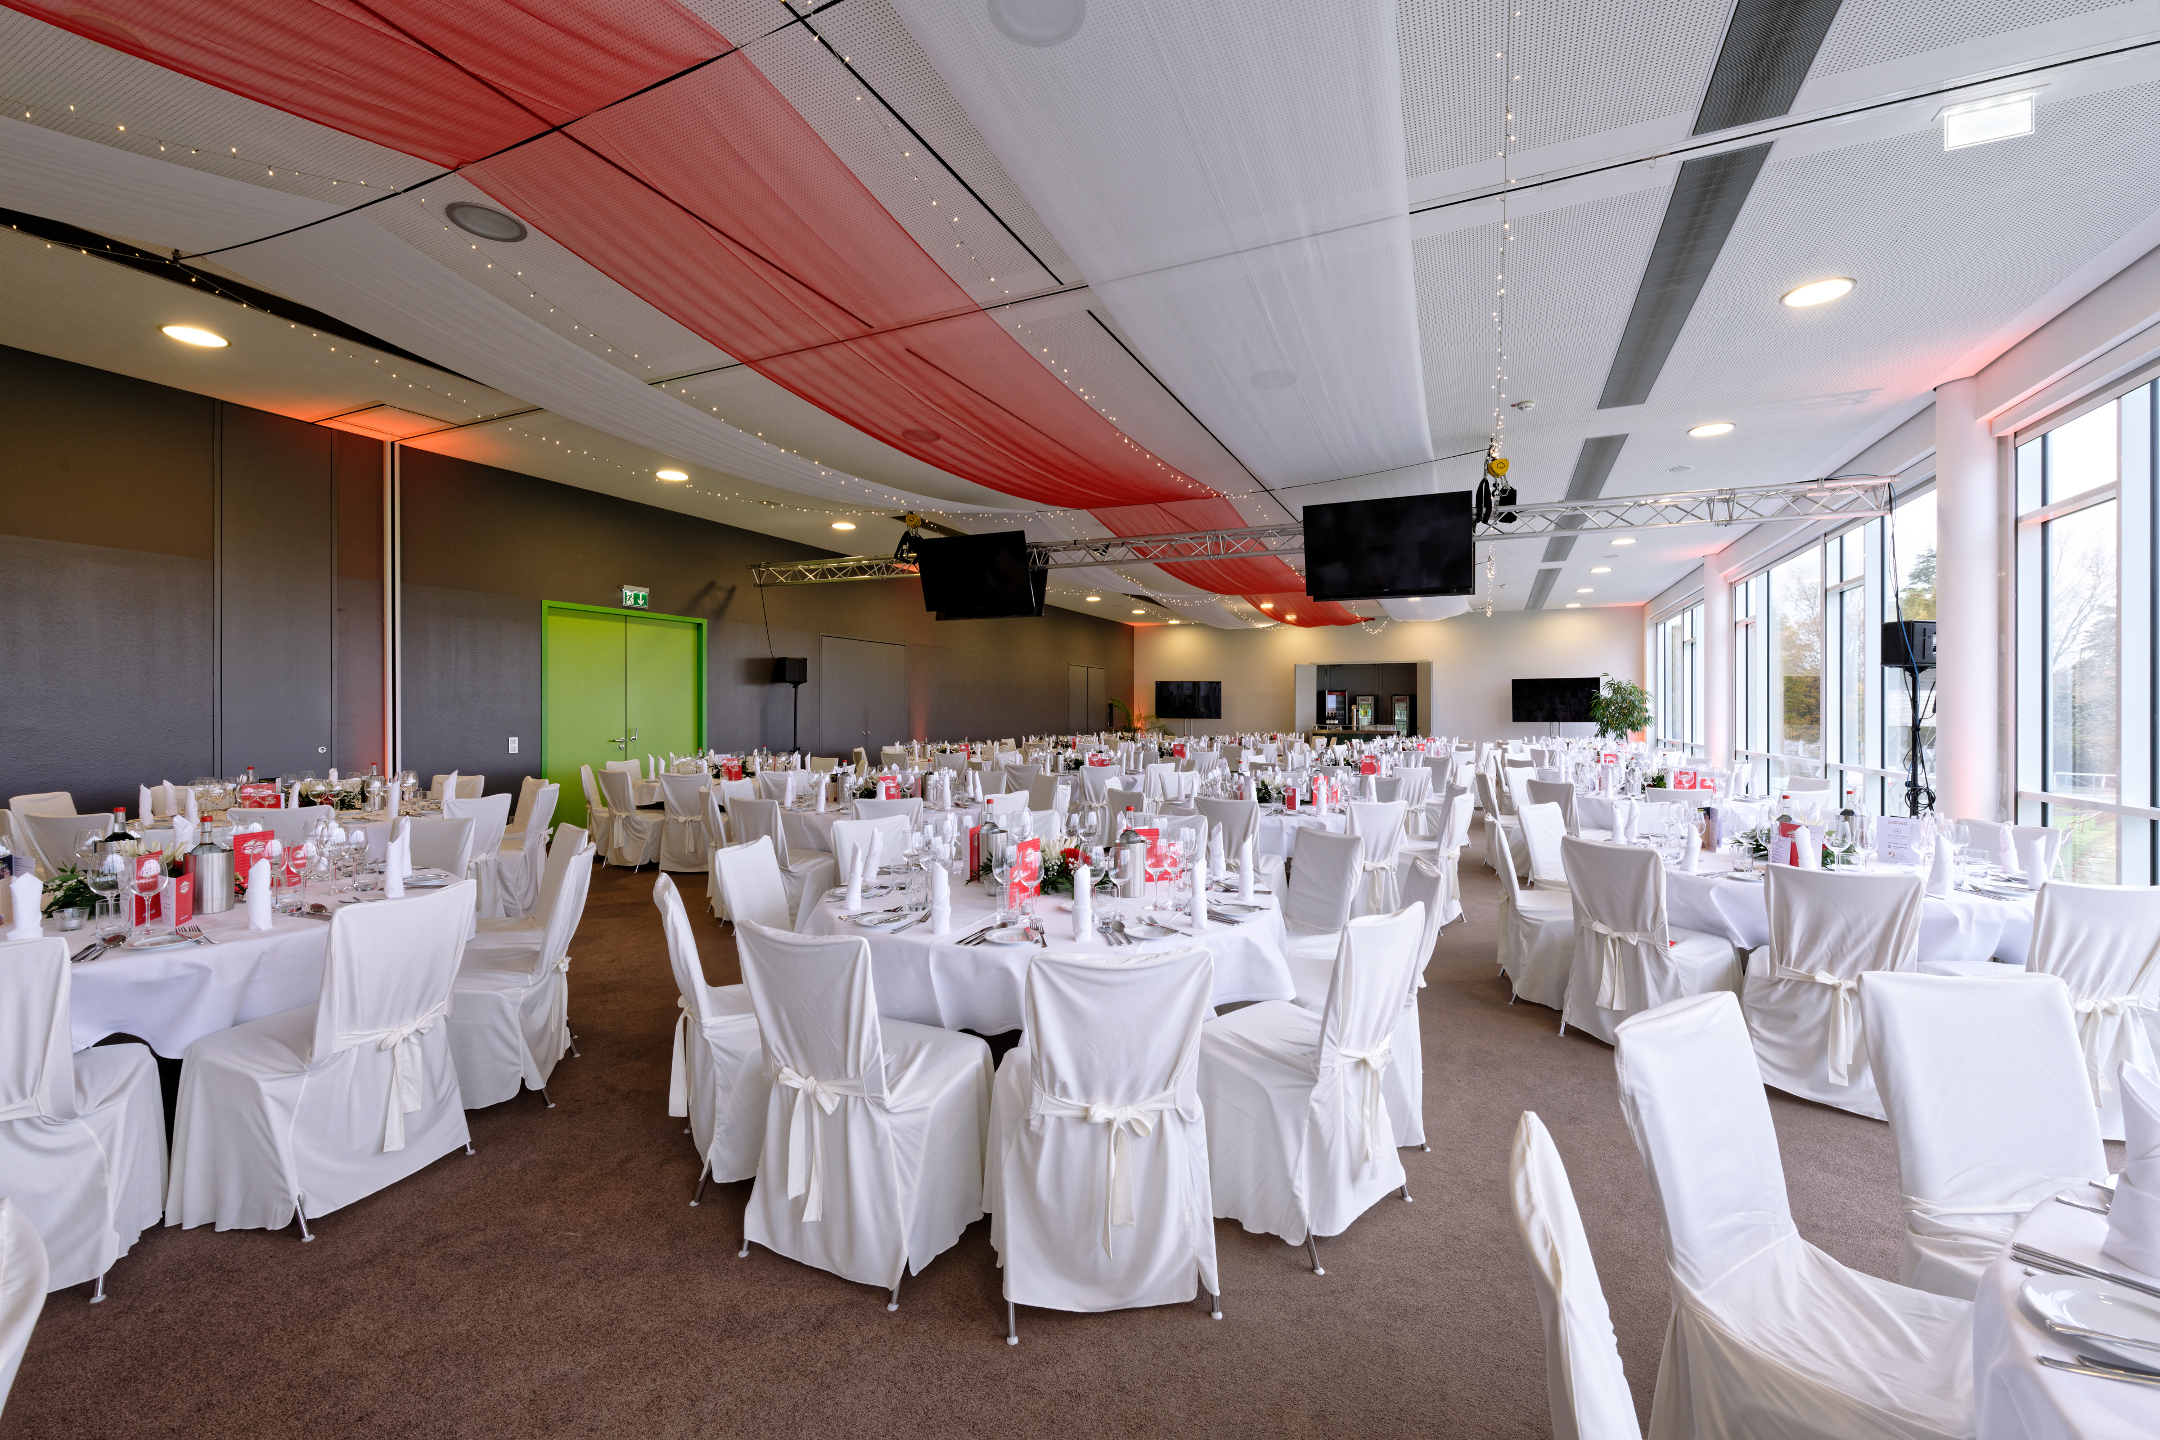 Function room Saal 1 with round tables | ATLANTIC Hotel Galopprennbahn Bremen